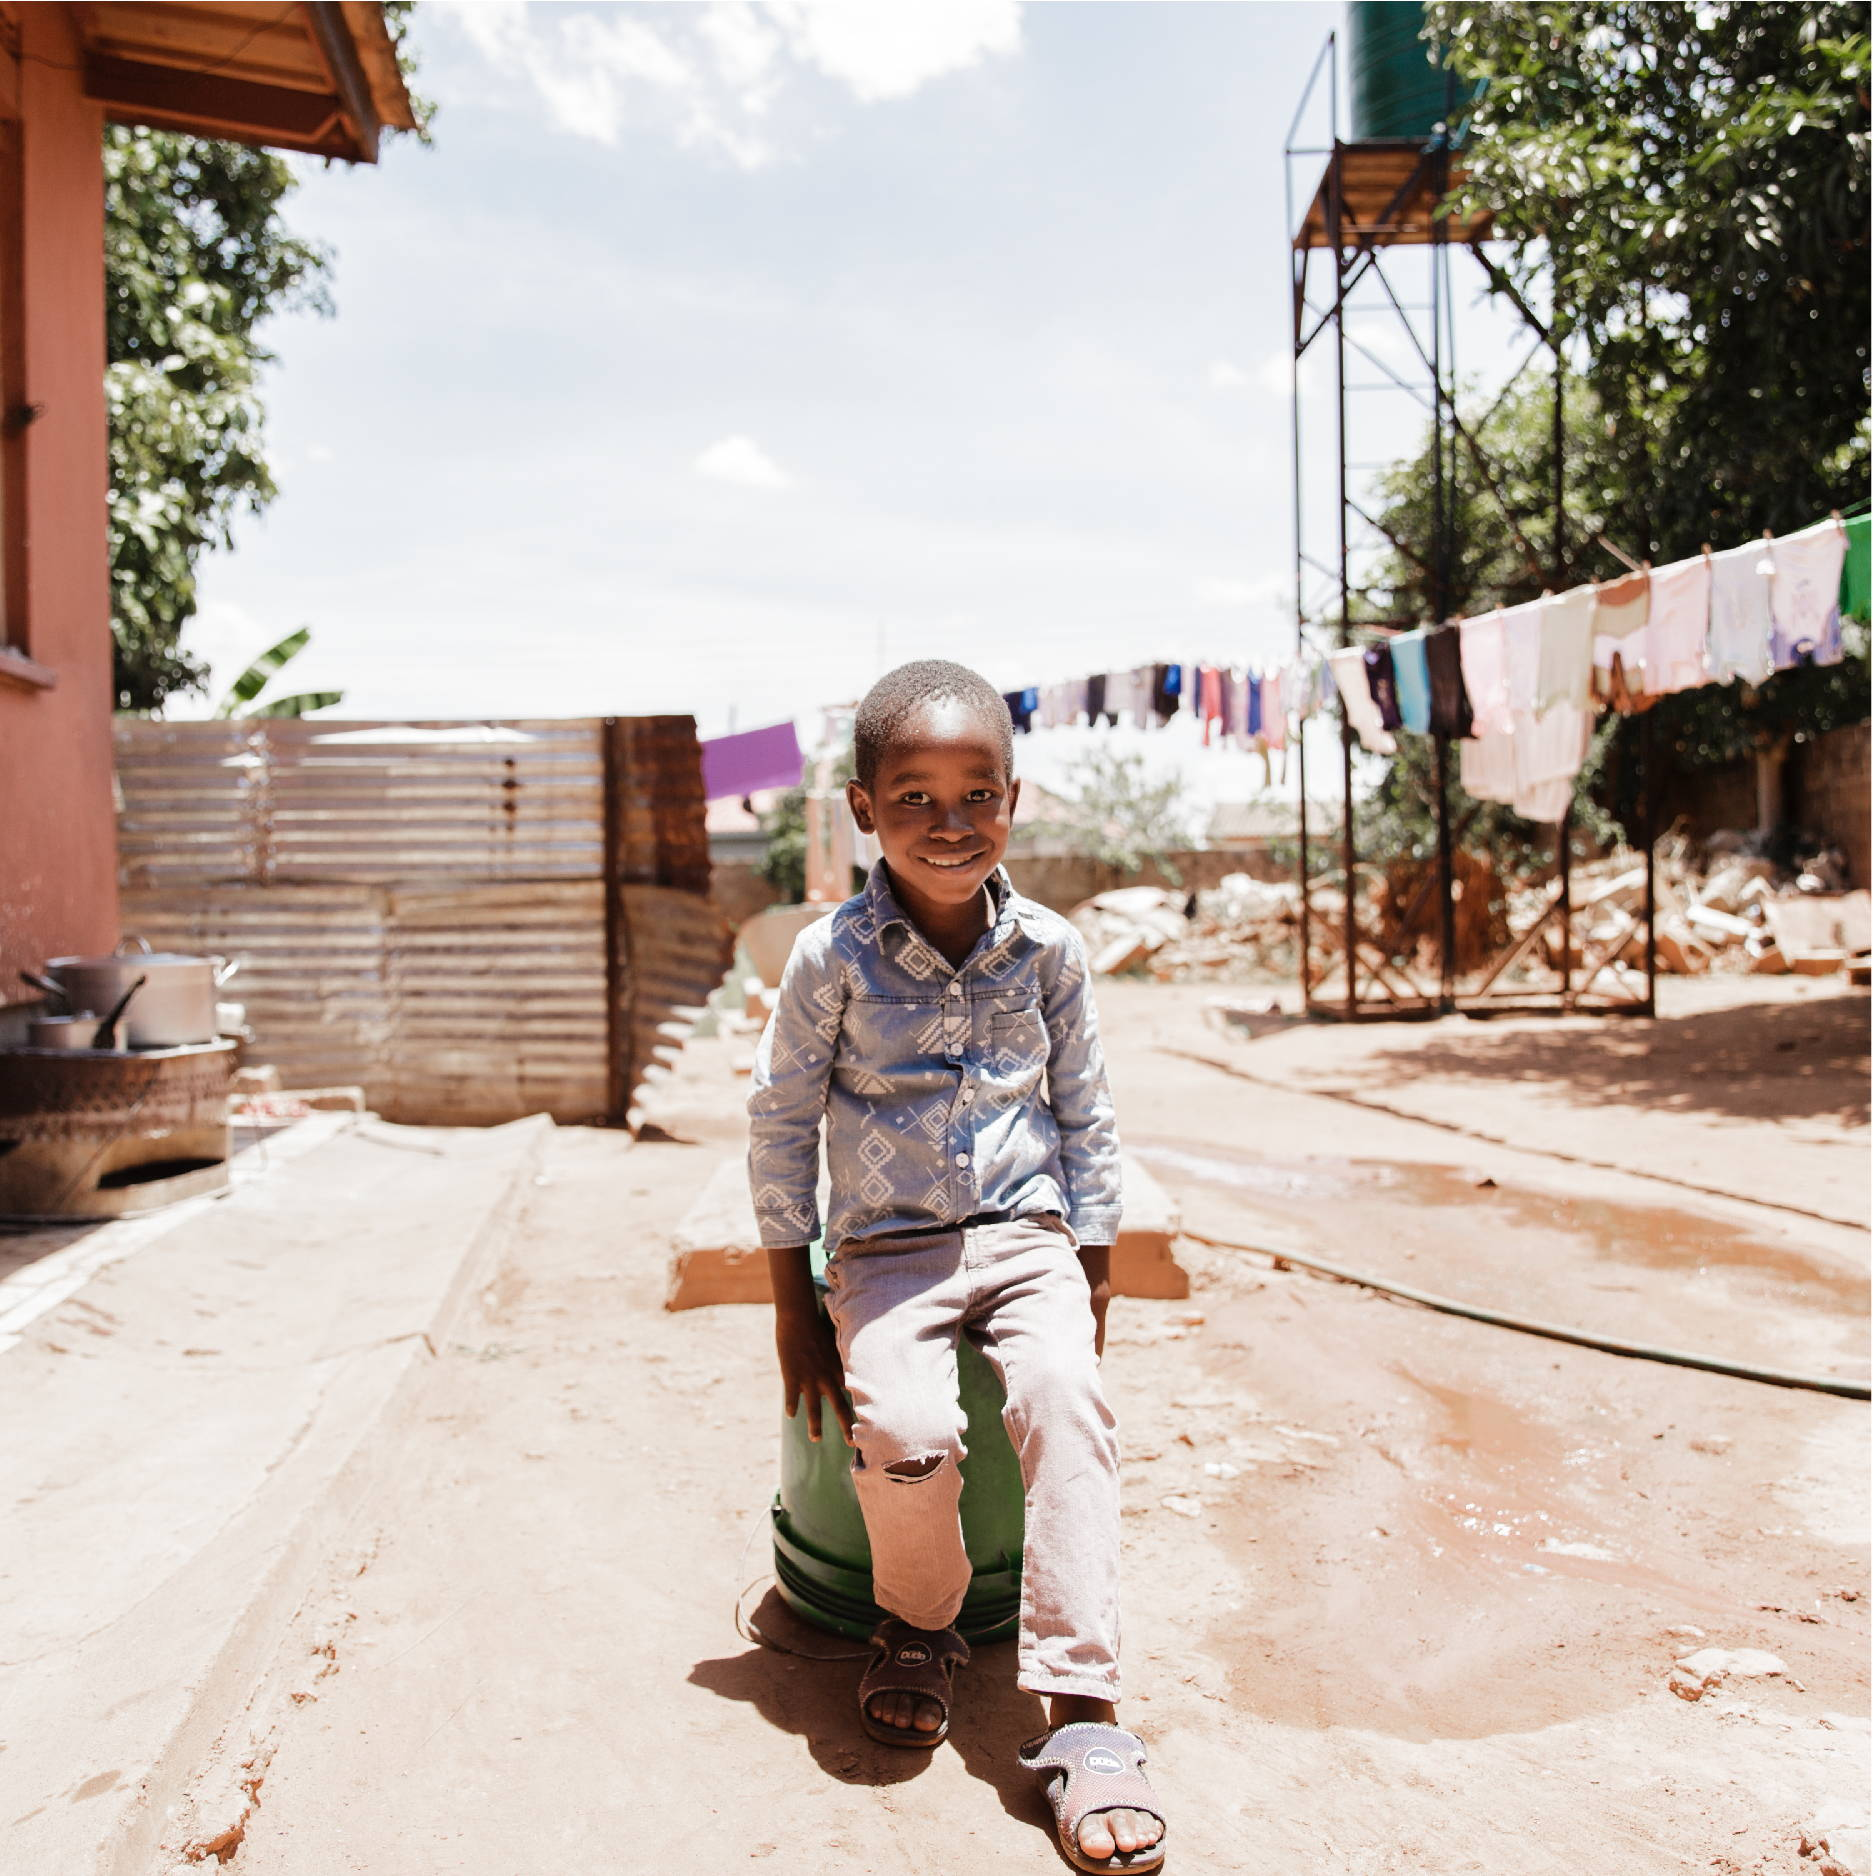 A young Zambian boy sits on a bucket outside his orphanage. The ground is very dry and clothes are hanging in the background